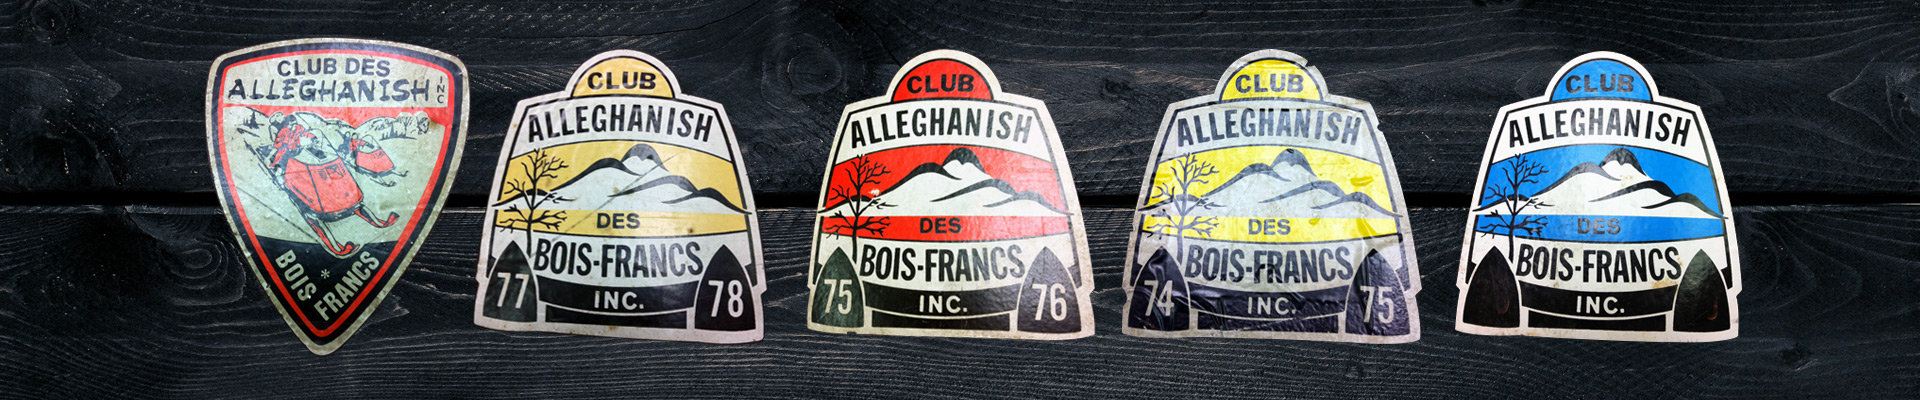 Badges - Club de motoneige Alleghanish Bois-Francs